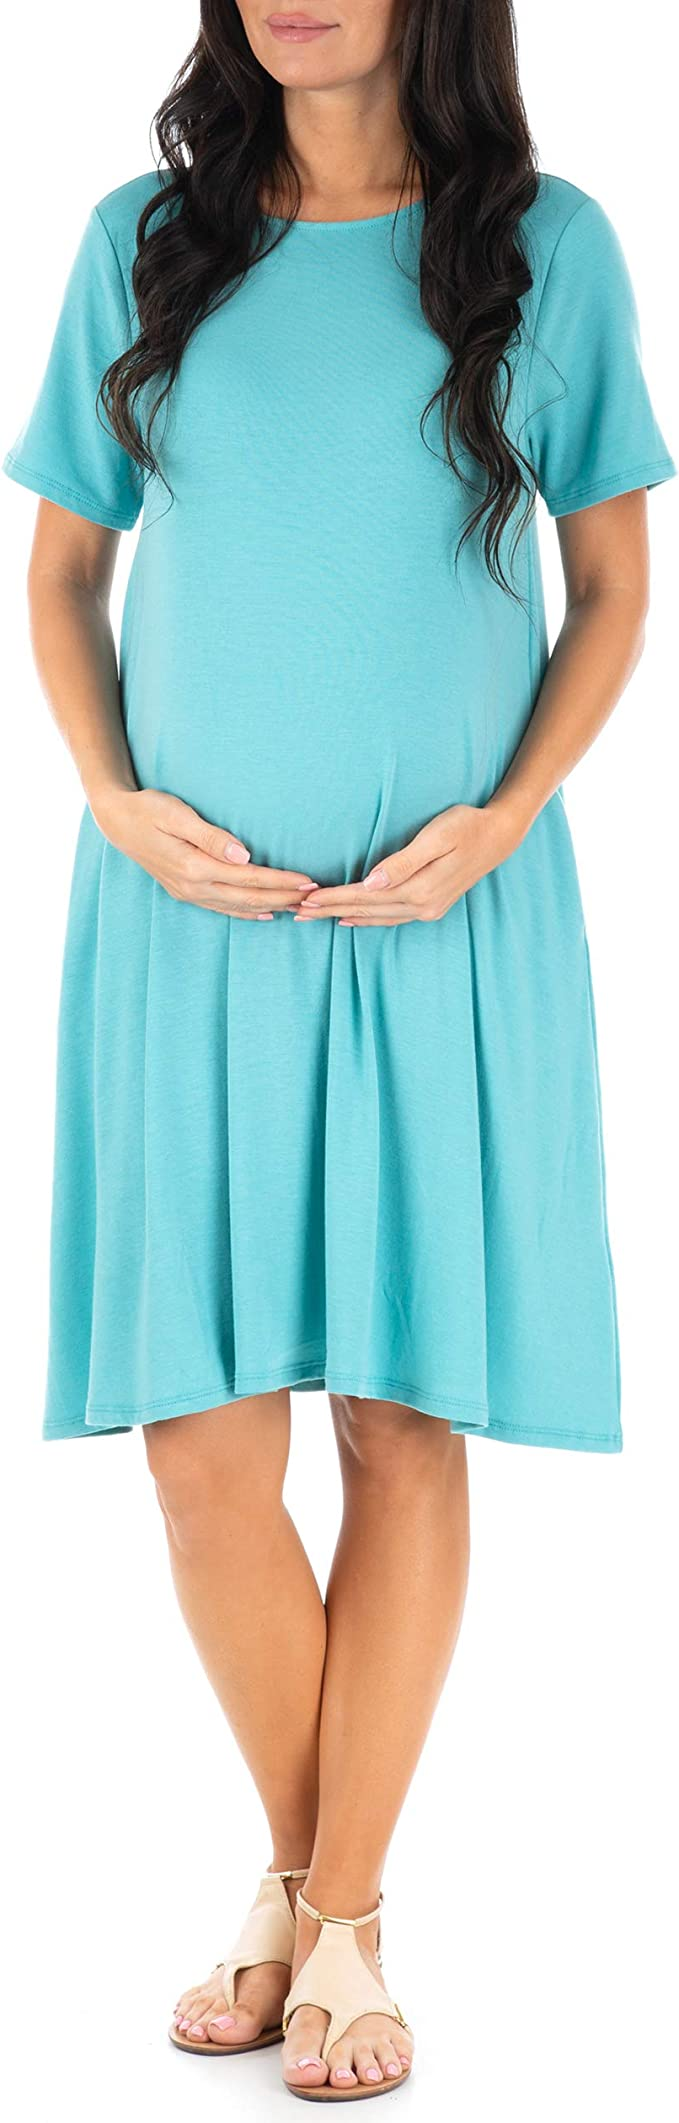 Mother Bee Maternity Women S Maternity T Shirt Dress With Pockets At Amazon Women S Clothing Store